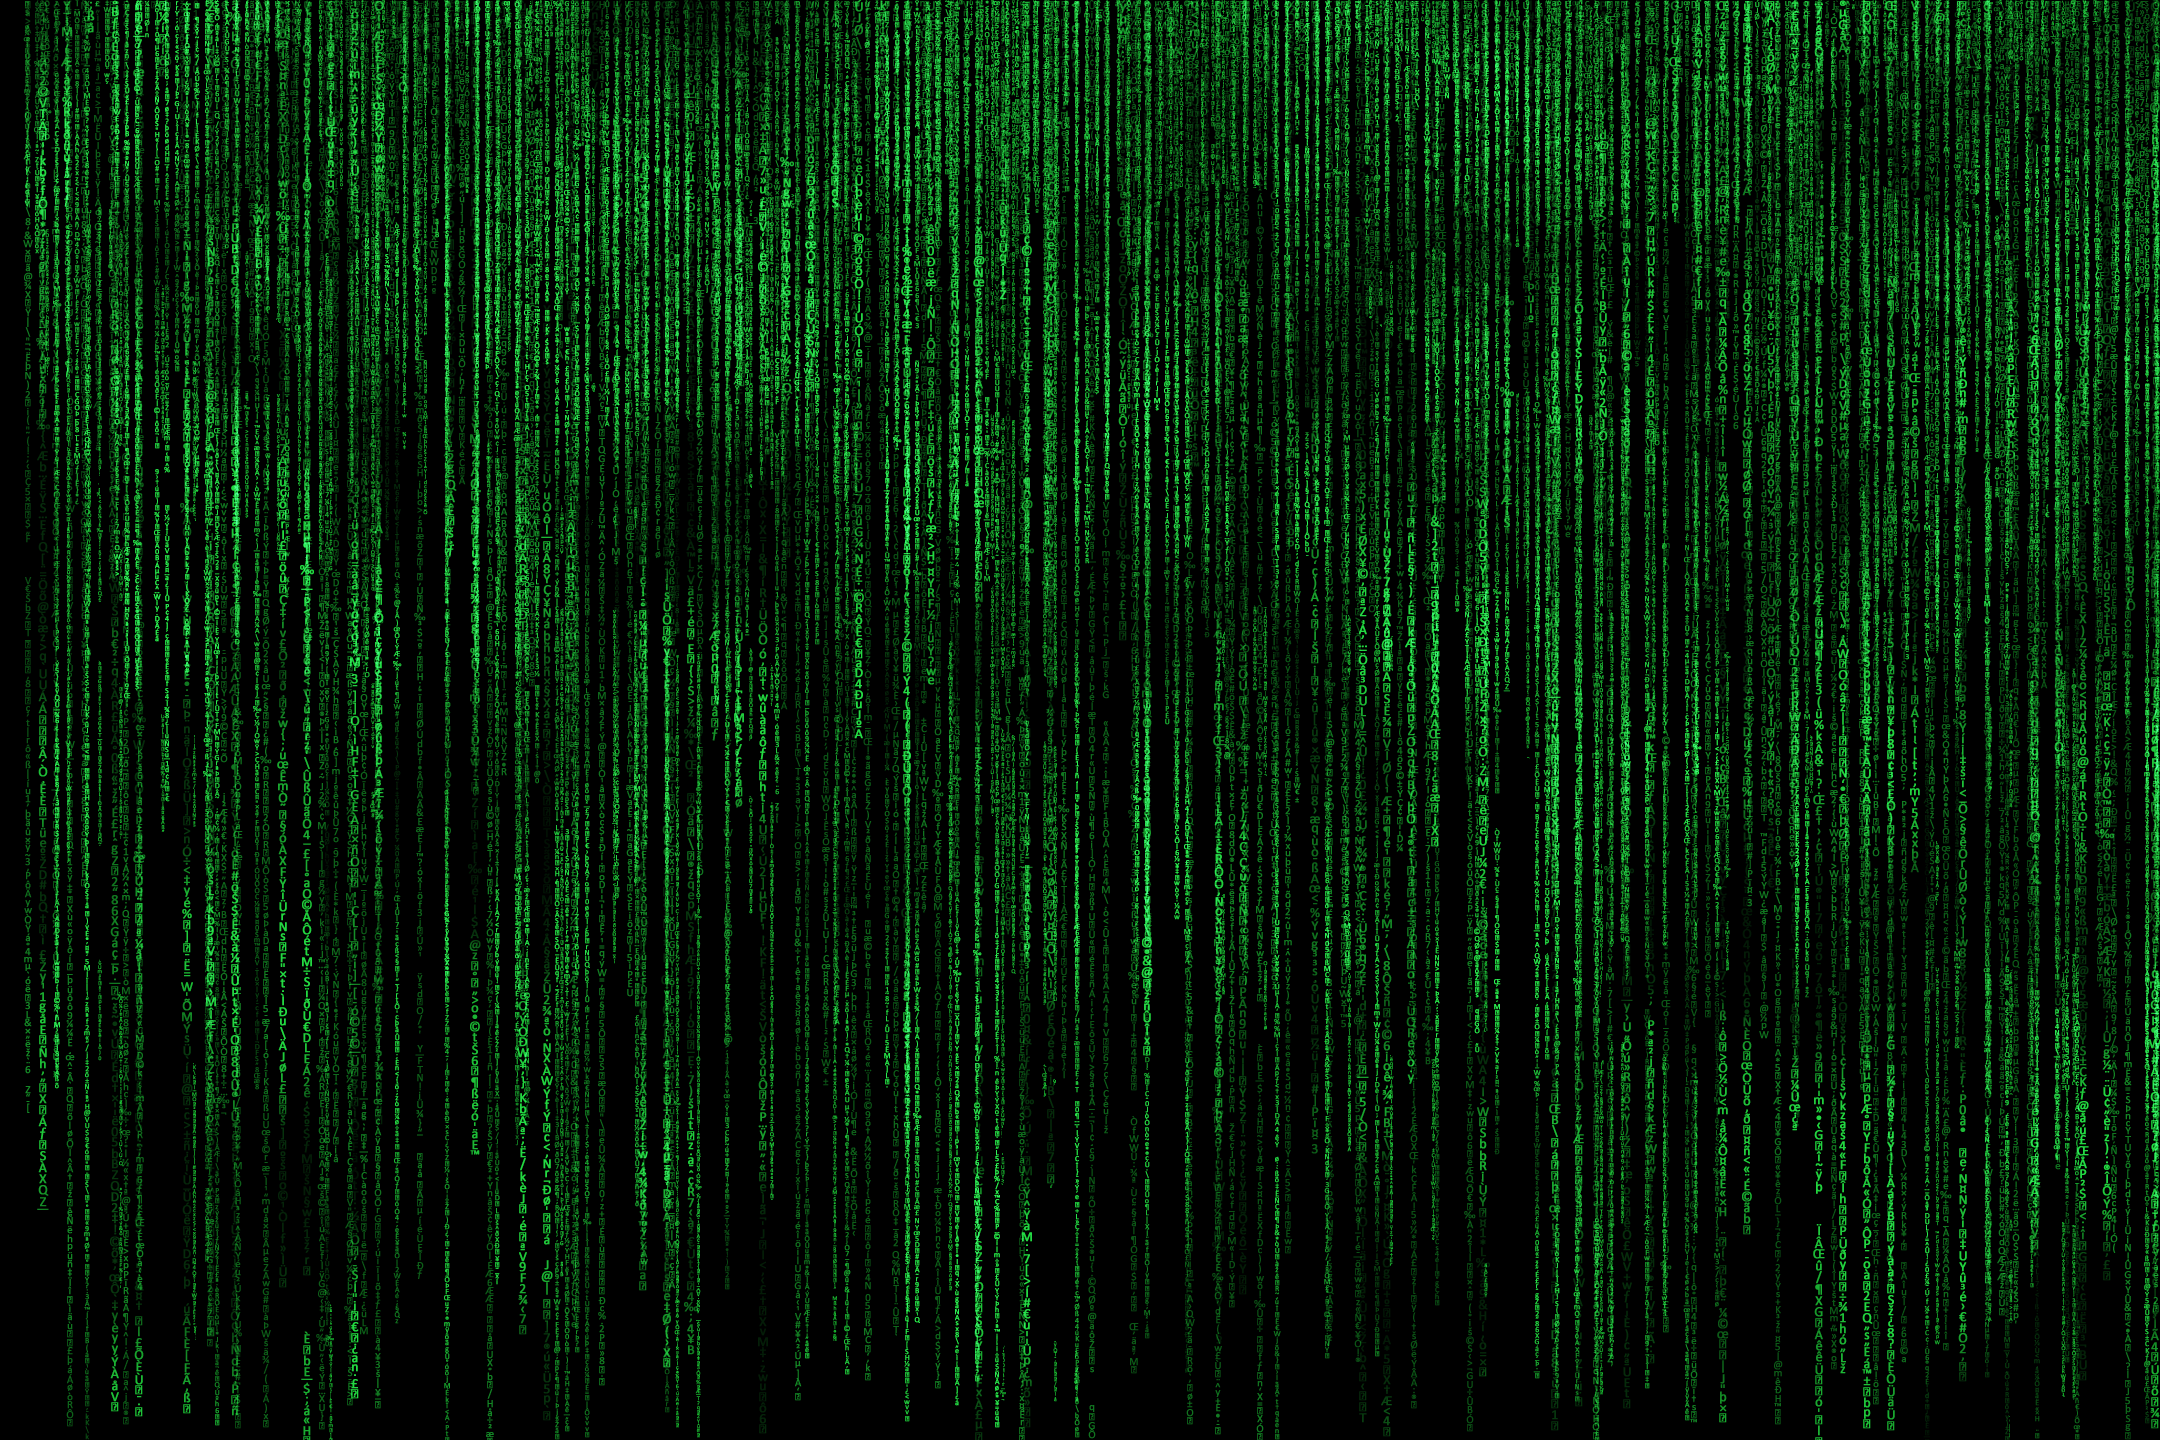 The Matrix Full Hd Fondo De Pantalla And Fondo De